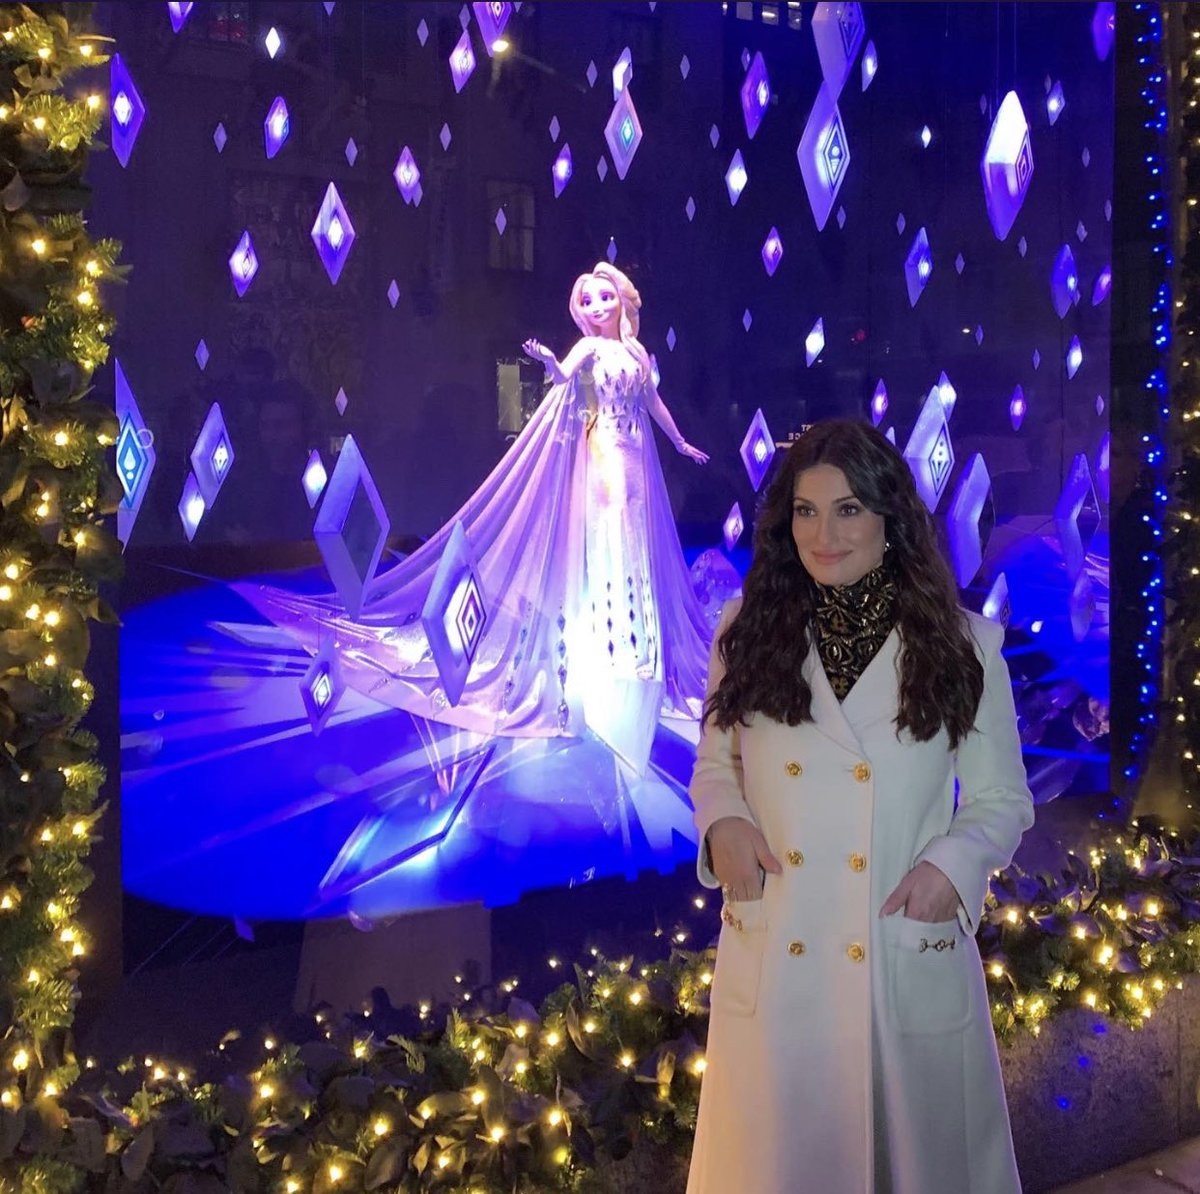 Happy Birthday to Queen Elsa herself @idinamenzel 😘#HappyBirthDay #IdinaMenzel #QueenElsa #Disney #Frozen2 https://t.co/nyzR57M3KH